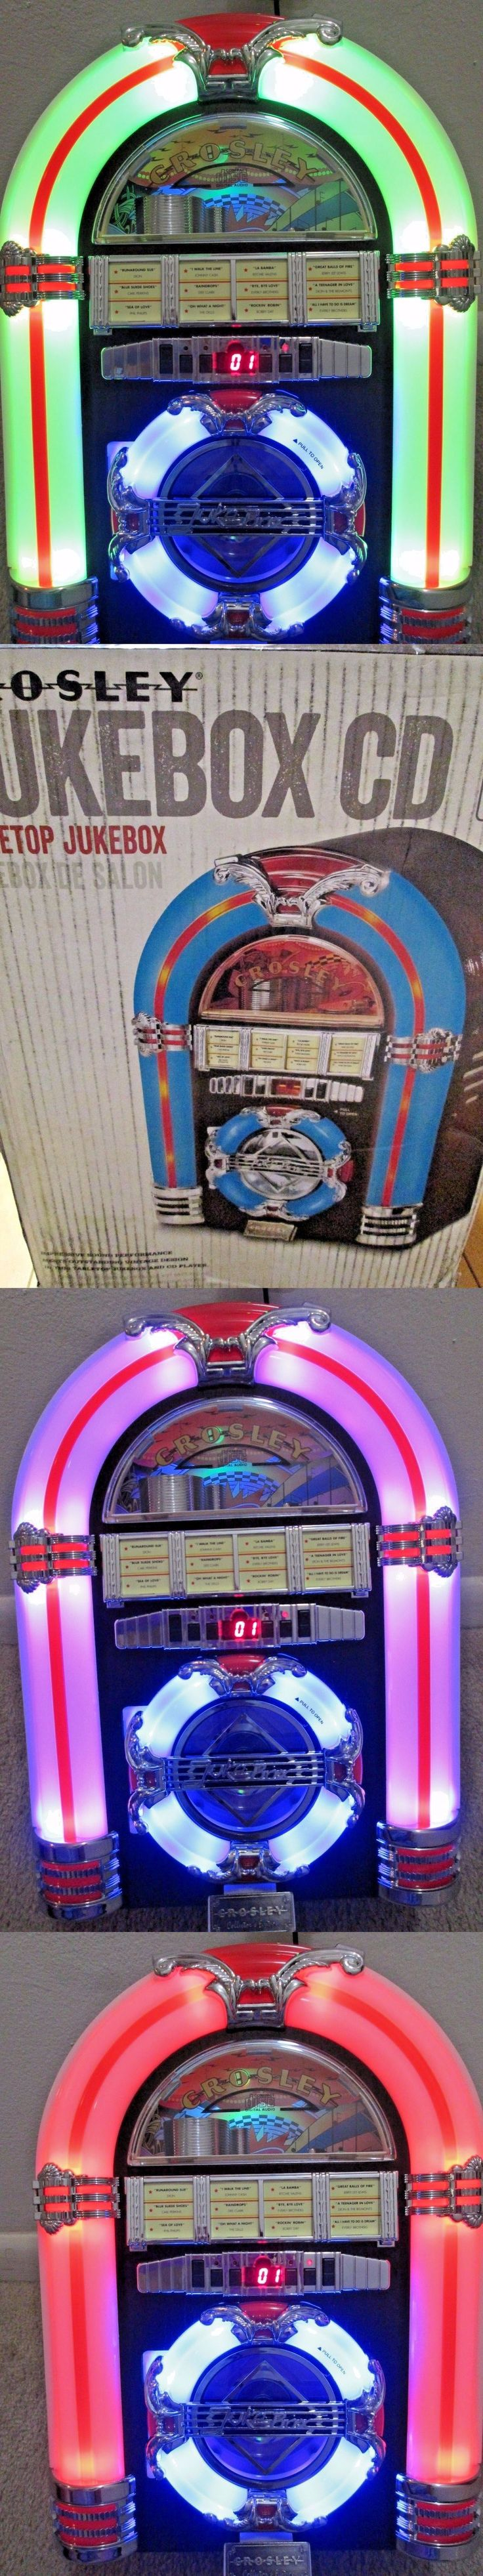 CD Players and Recorders: Nib Crosley Cherry Table Led Jukebox W Cd Player Am Fm Radio And Auxiliary Output -> BUY IT NOW ONLY: $122.99 on eBay!